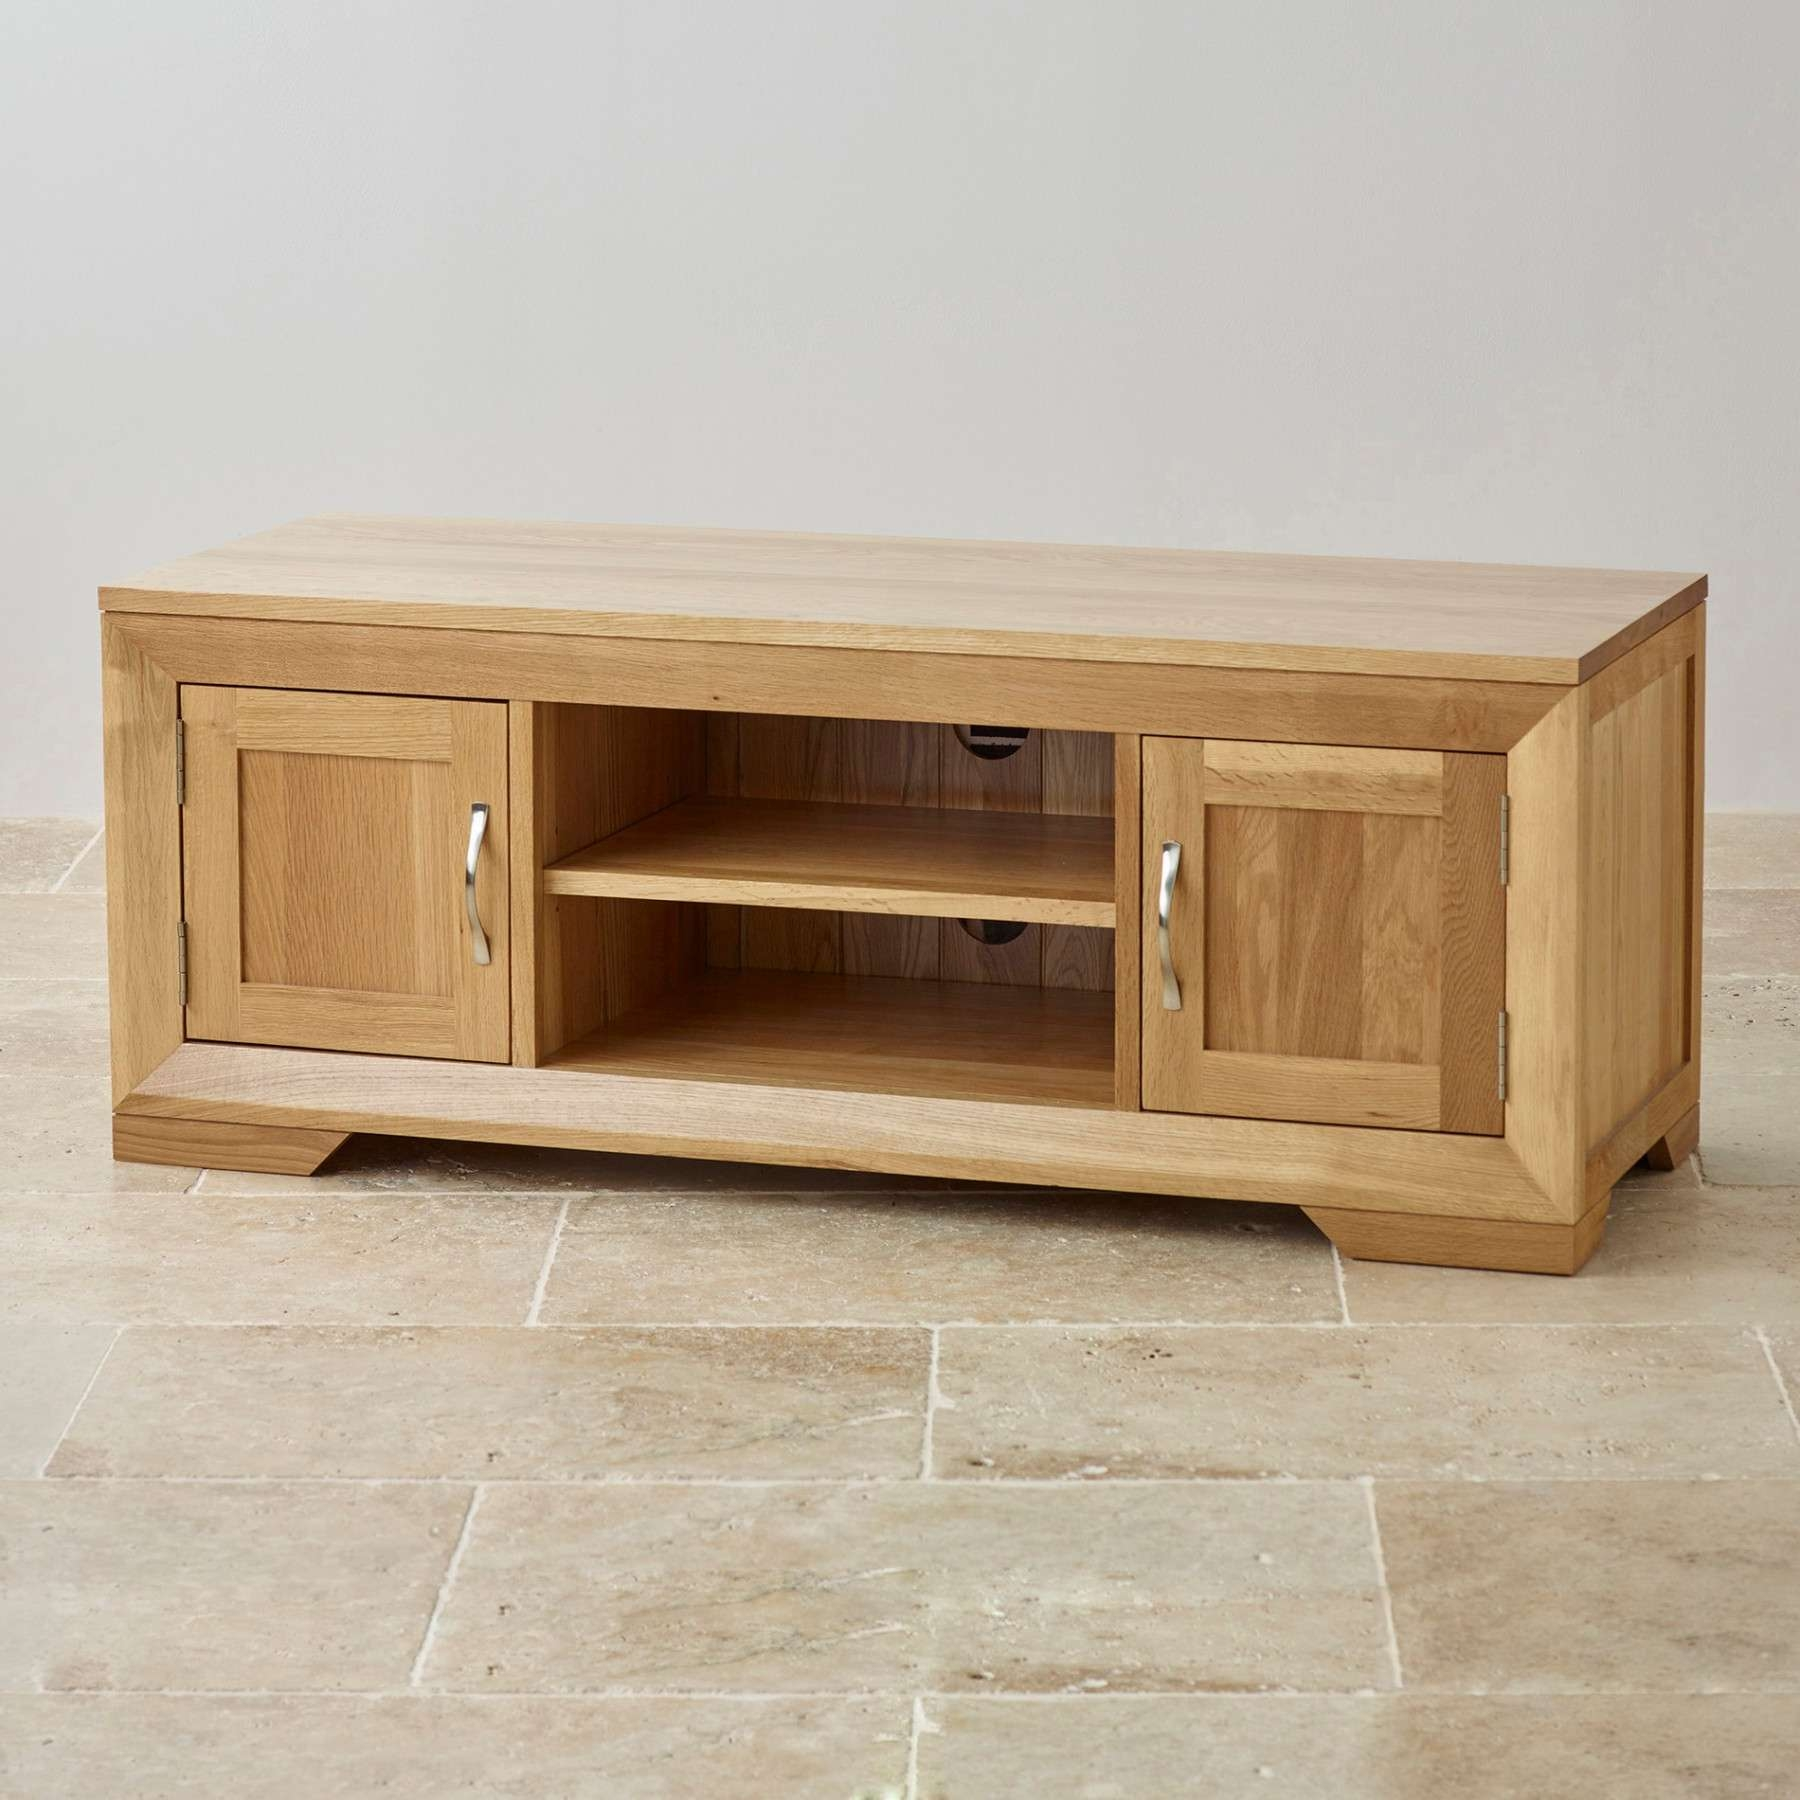 Tv Stands | Oak, Mango And Painted | Oak Furniture Land Within Solid Oak Tv Stands (View 11 of 15)